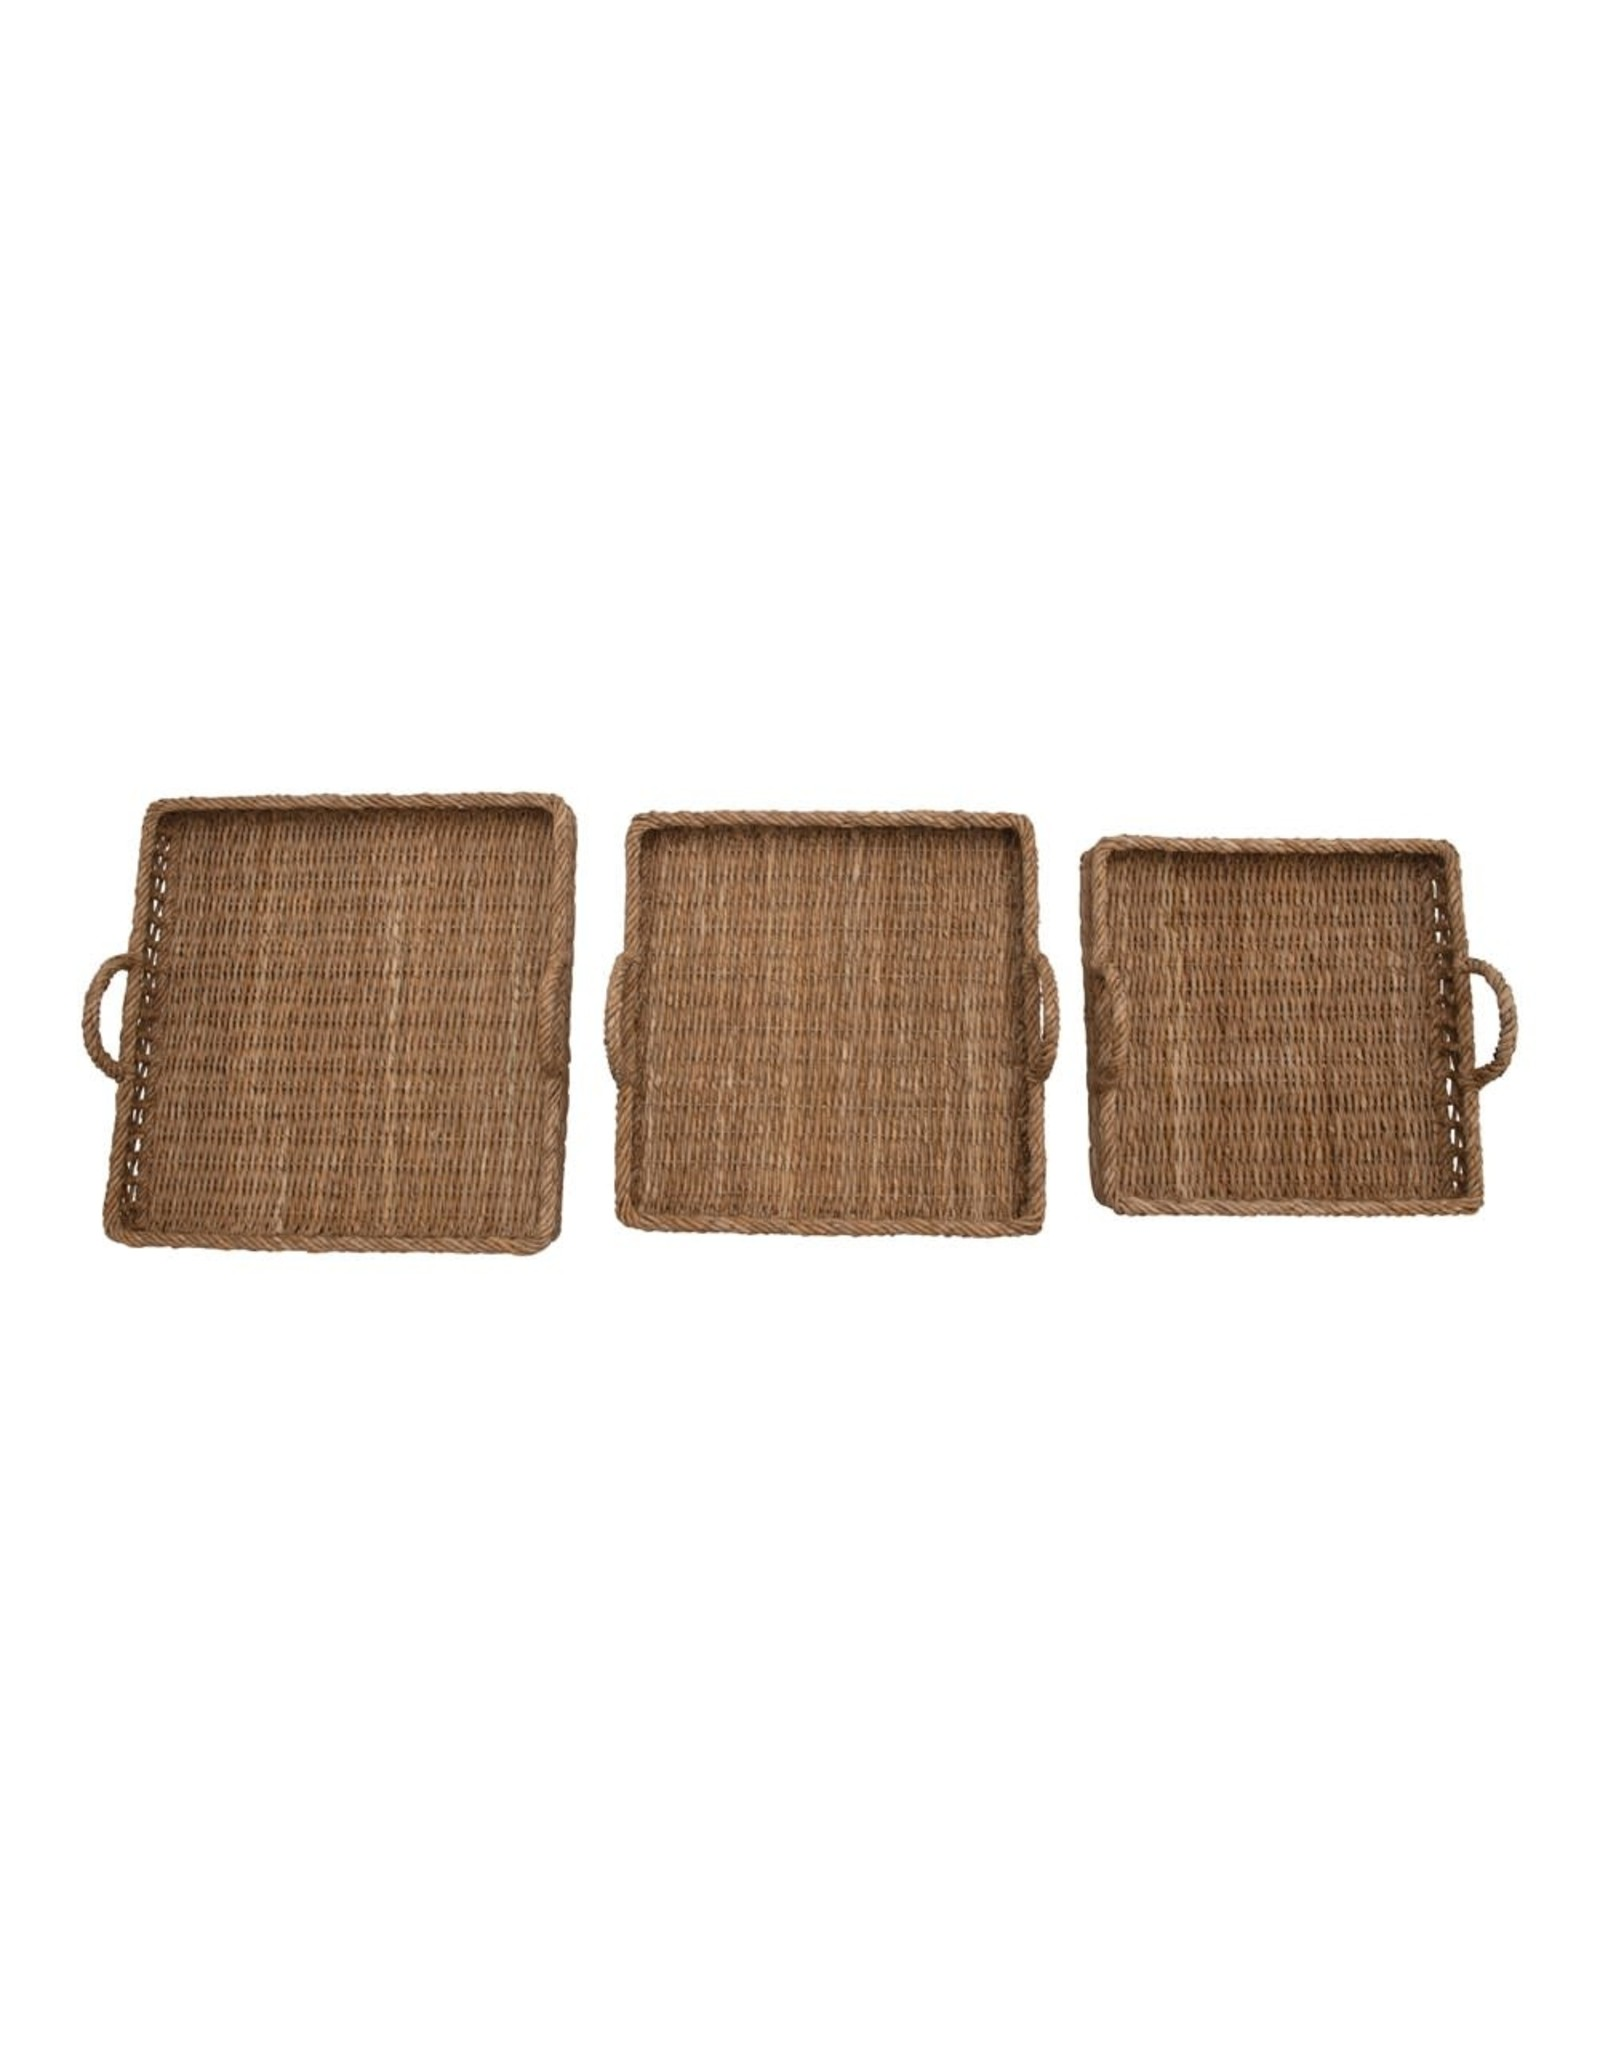 The Florist & The Merchant Square Water Hyacinth & Rattan Trays